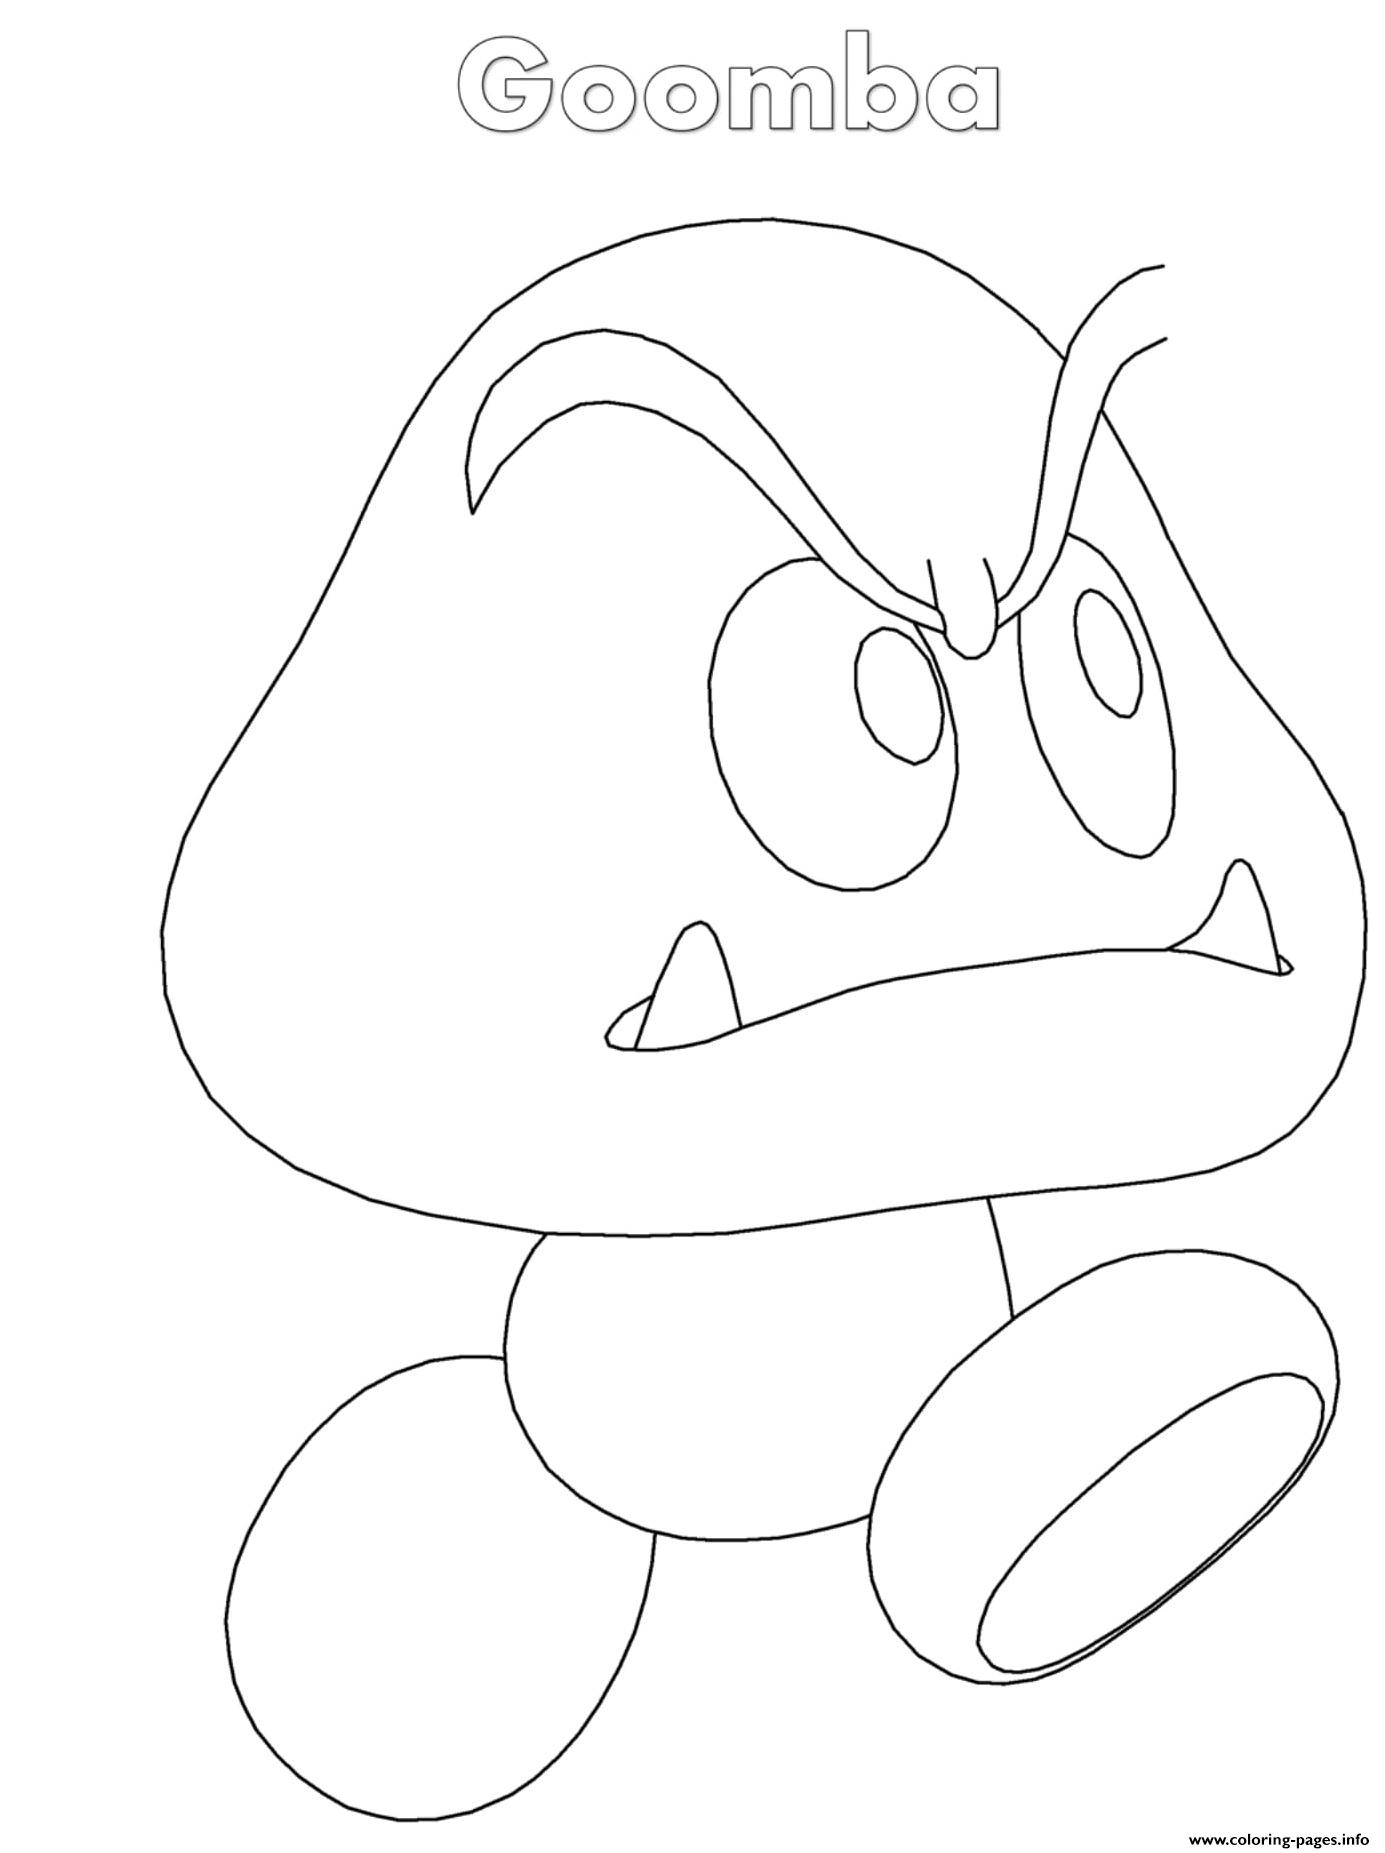 Goomba Nintendo coloring pages